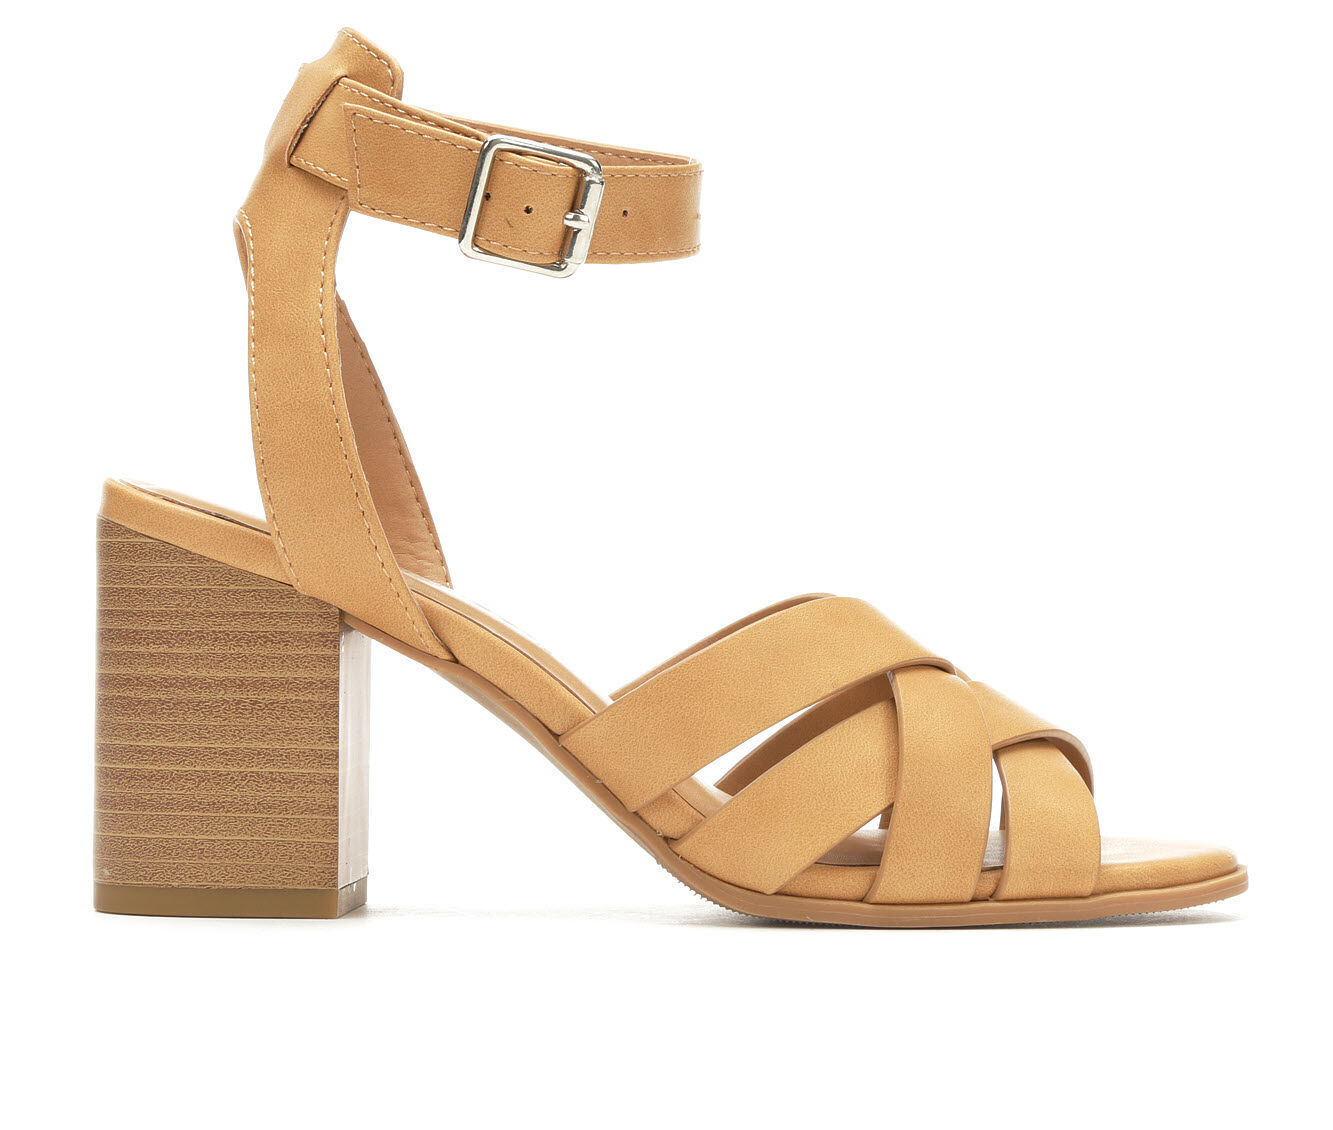 a huge selection of Women's City Classified Login Strappy Heeled Sandals Natural